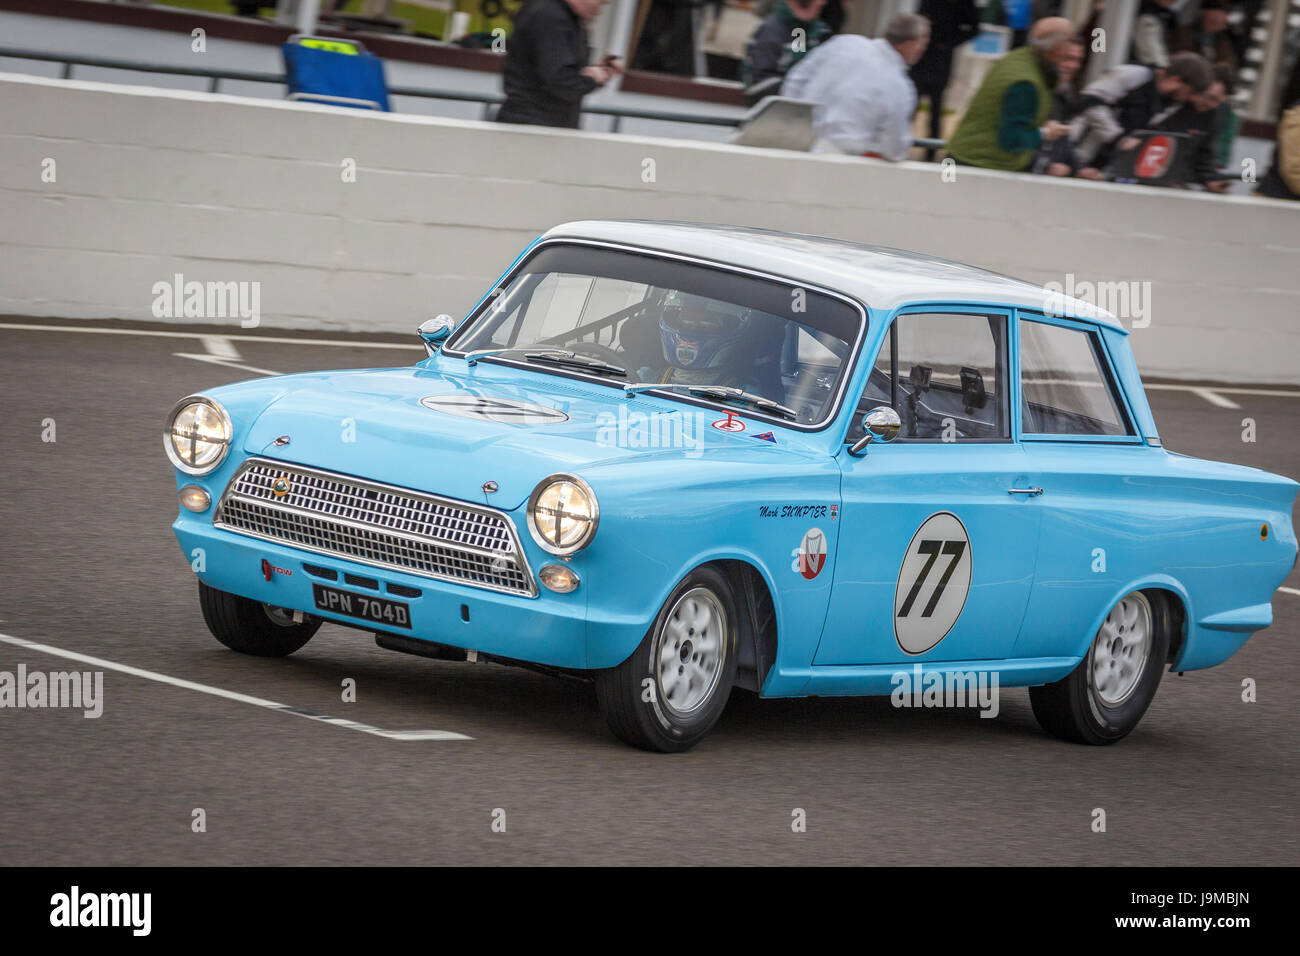 1964 ford lotus cortina mk1 with driver mark sumpter during the whitmore cup race at